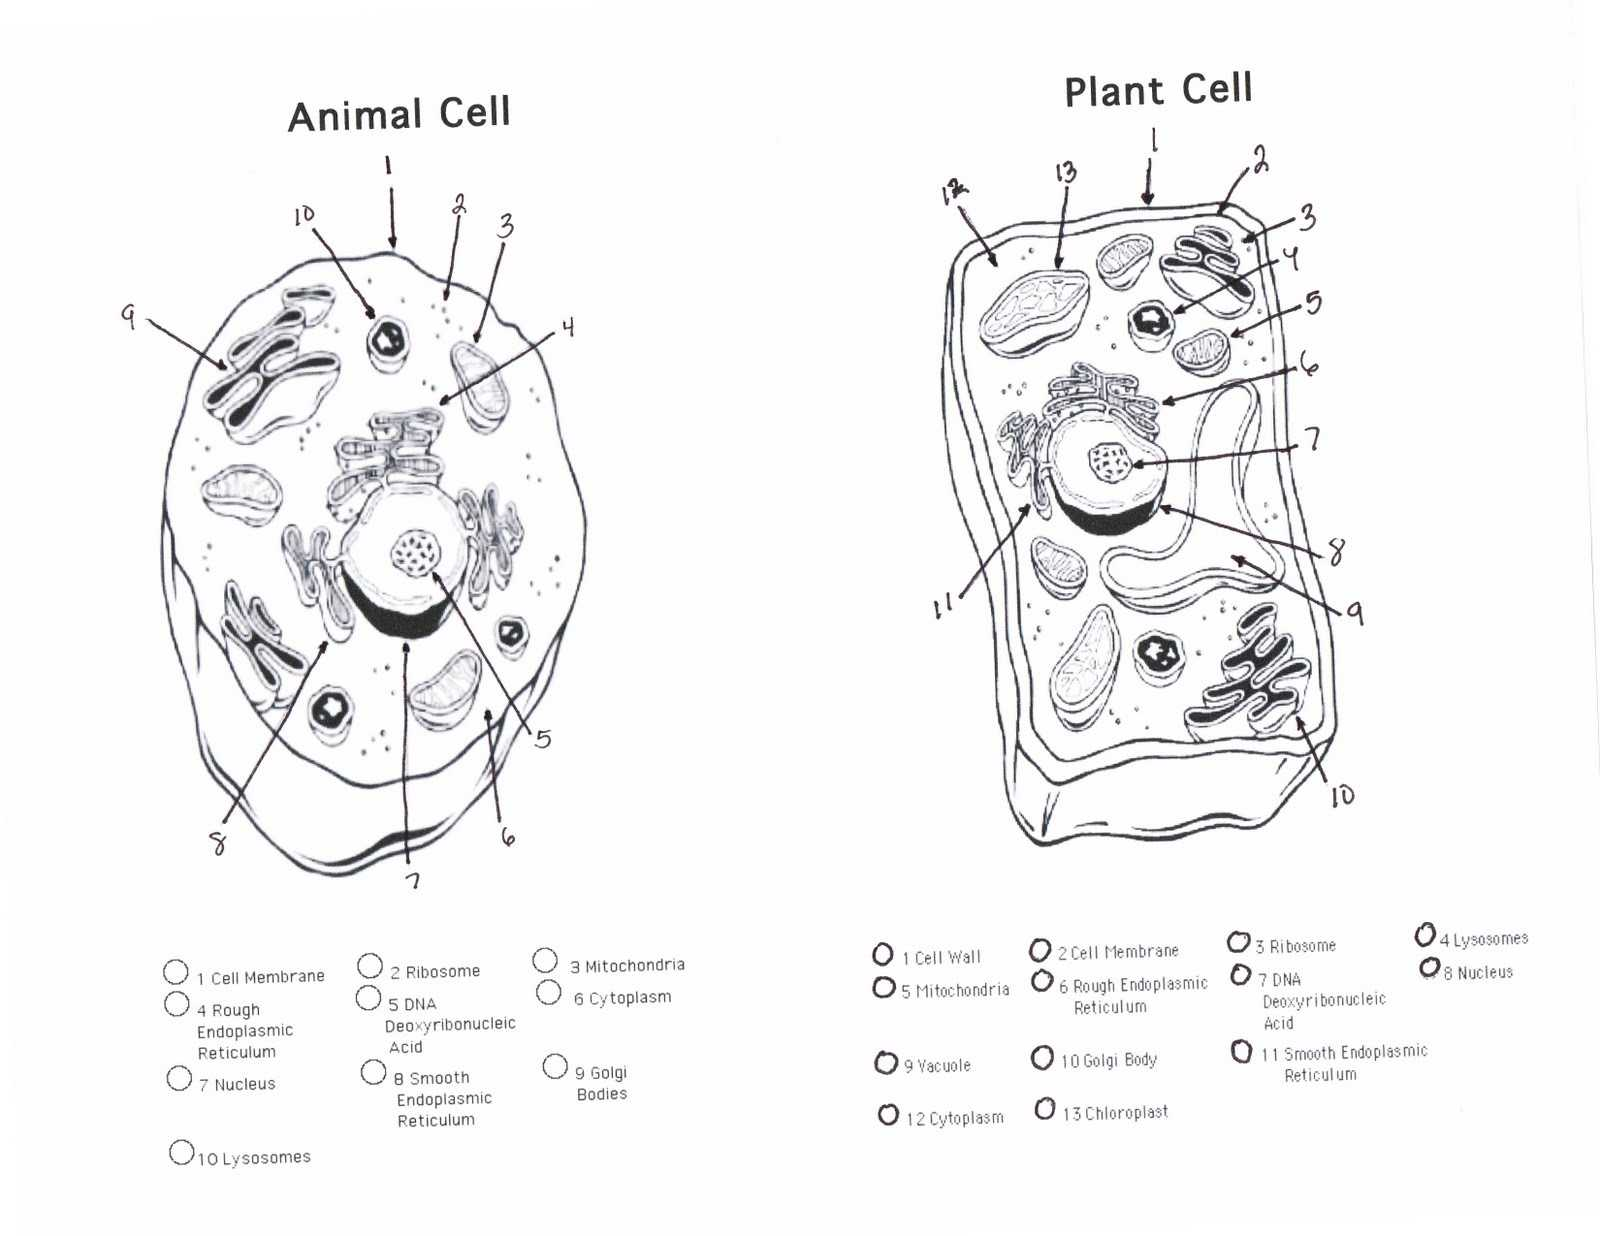 Characteristics Of Bacteria Worksheet Answers or Cells Alive Plant Cell Worksheet Answer Key Unique Plant Cell